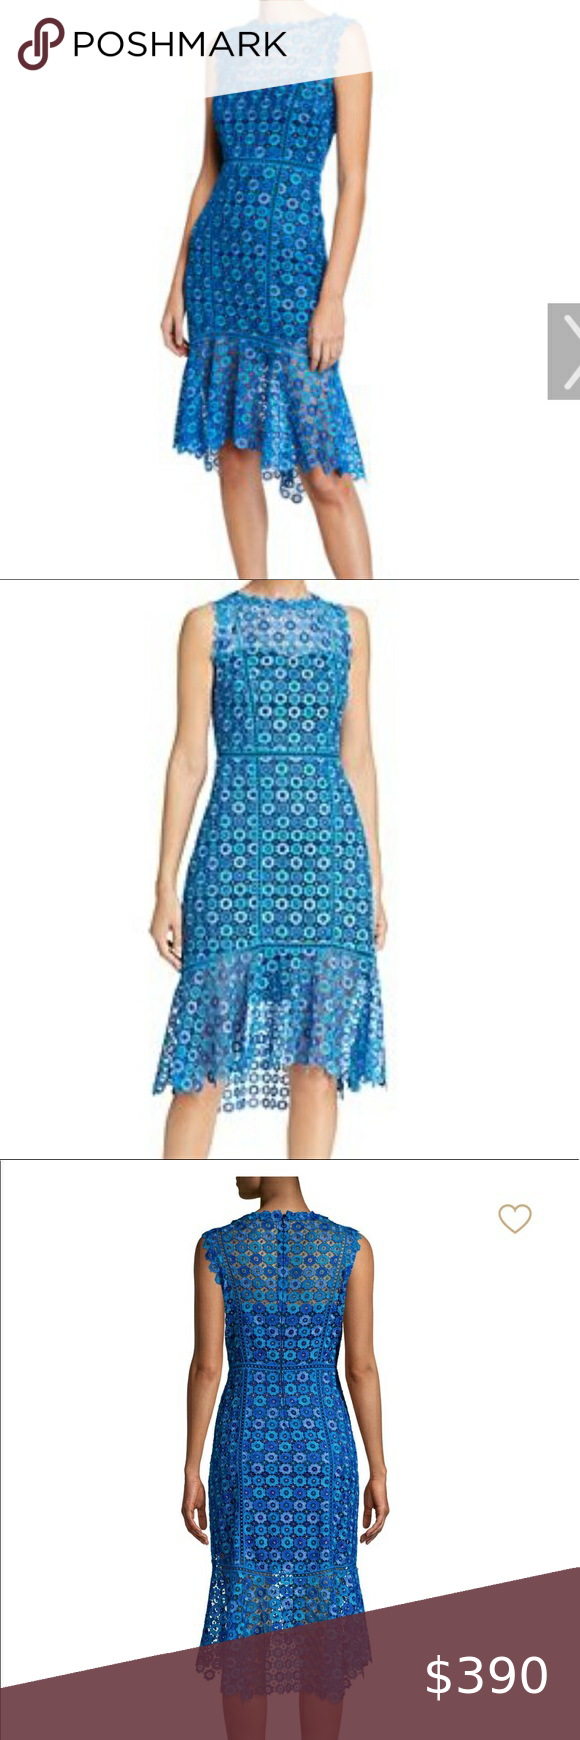 Nwt Elie Tahari Cocktail Dress Beautiful Dress Never Worn Brand New With Tags Purchased And Can Not R Beautiful Cocktail Dresses Dresses Elie Tahari Dresses [ 1740 x 580 Pixel ]